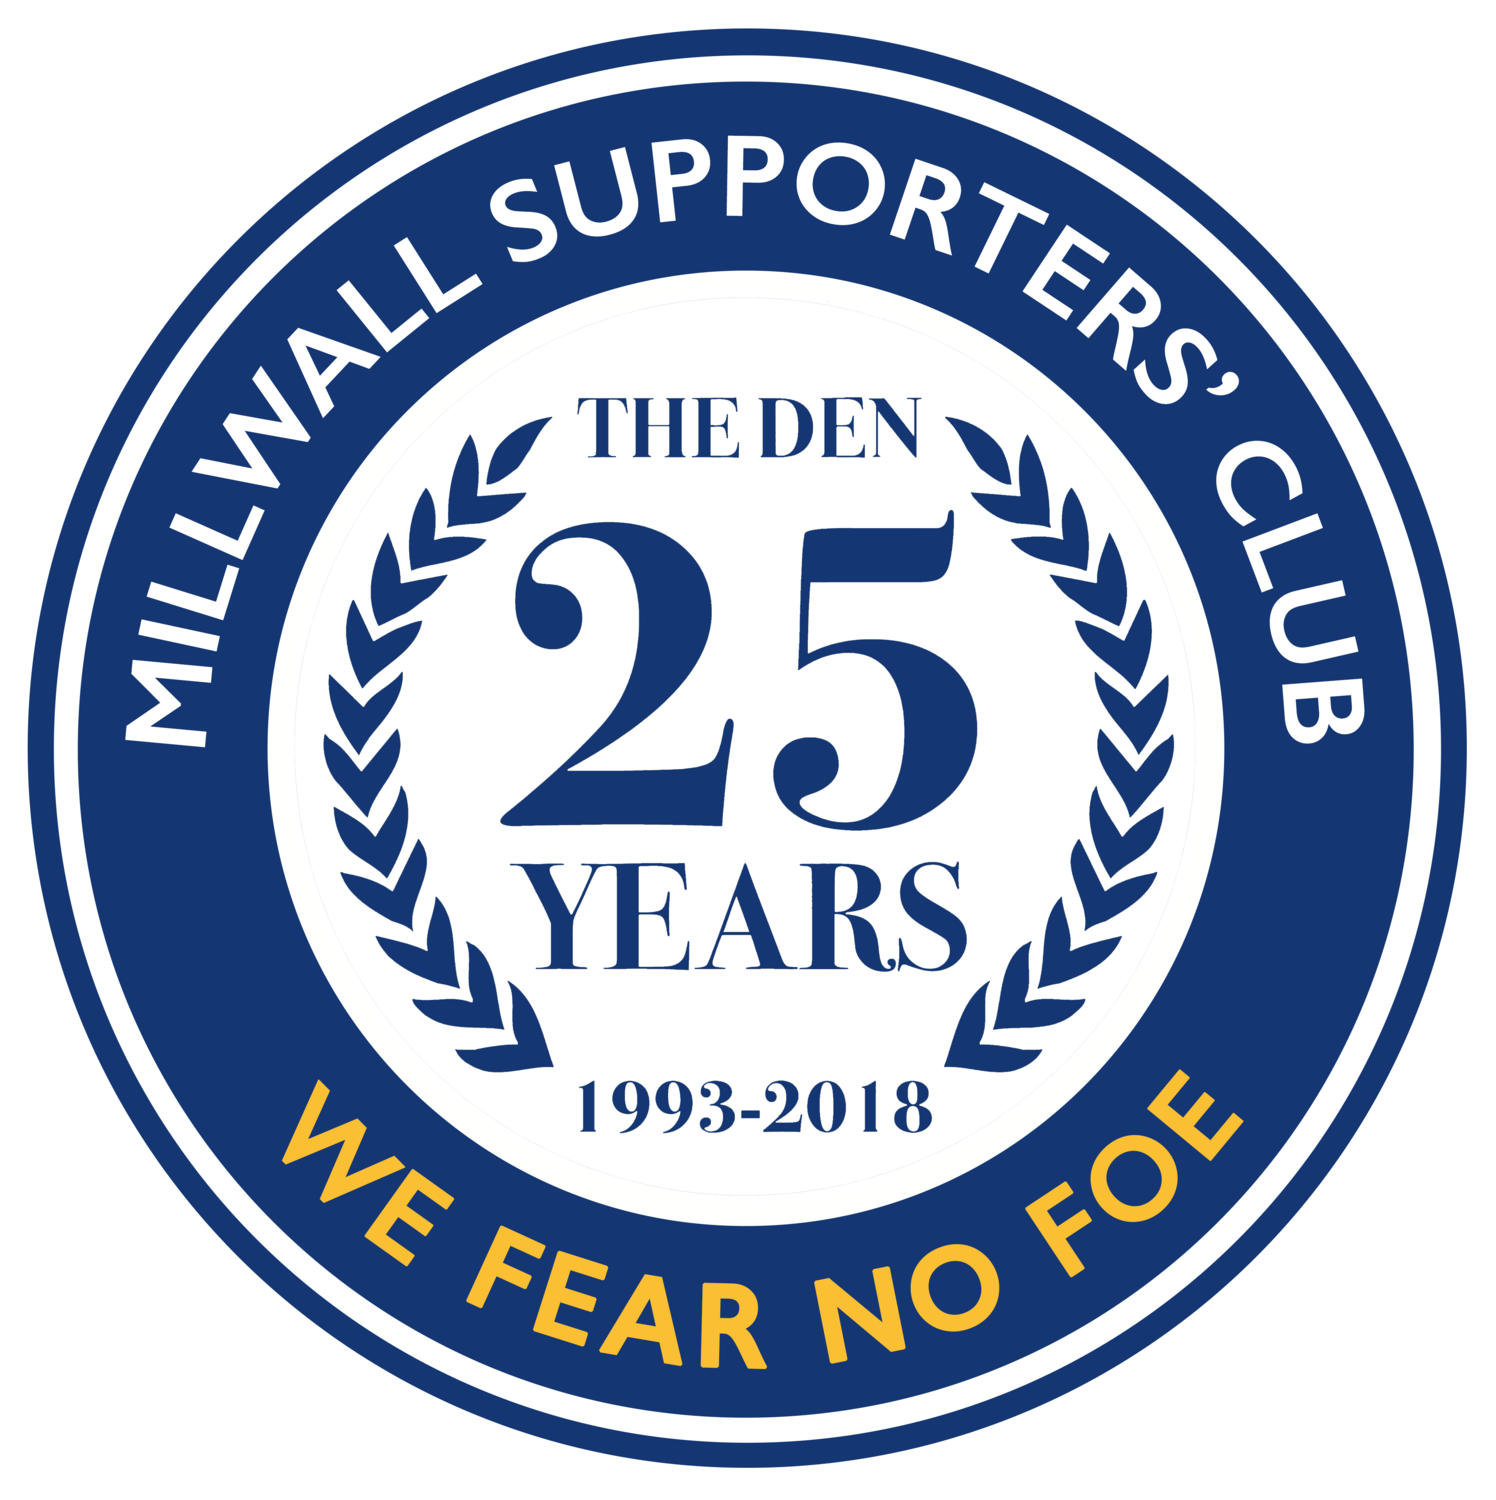 25 Years At The Den Badge